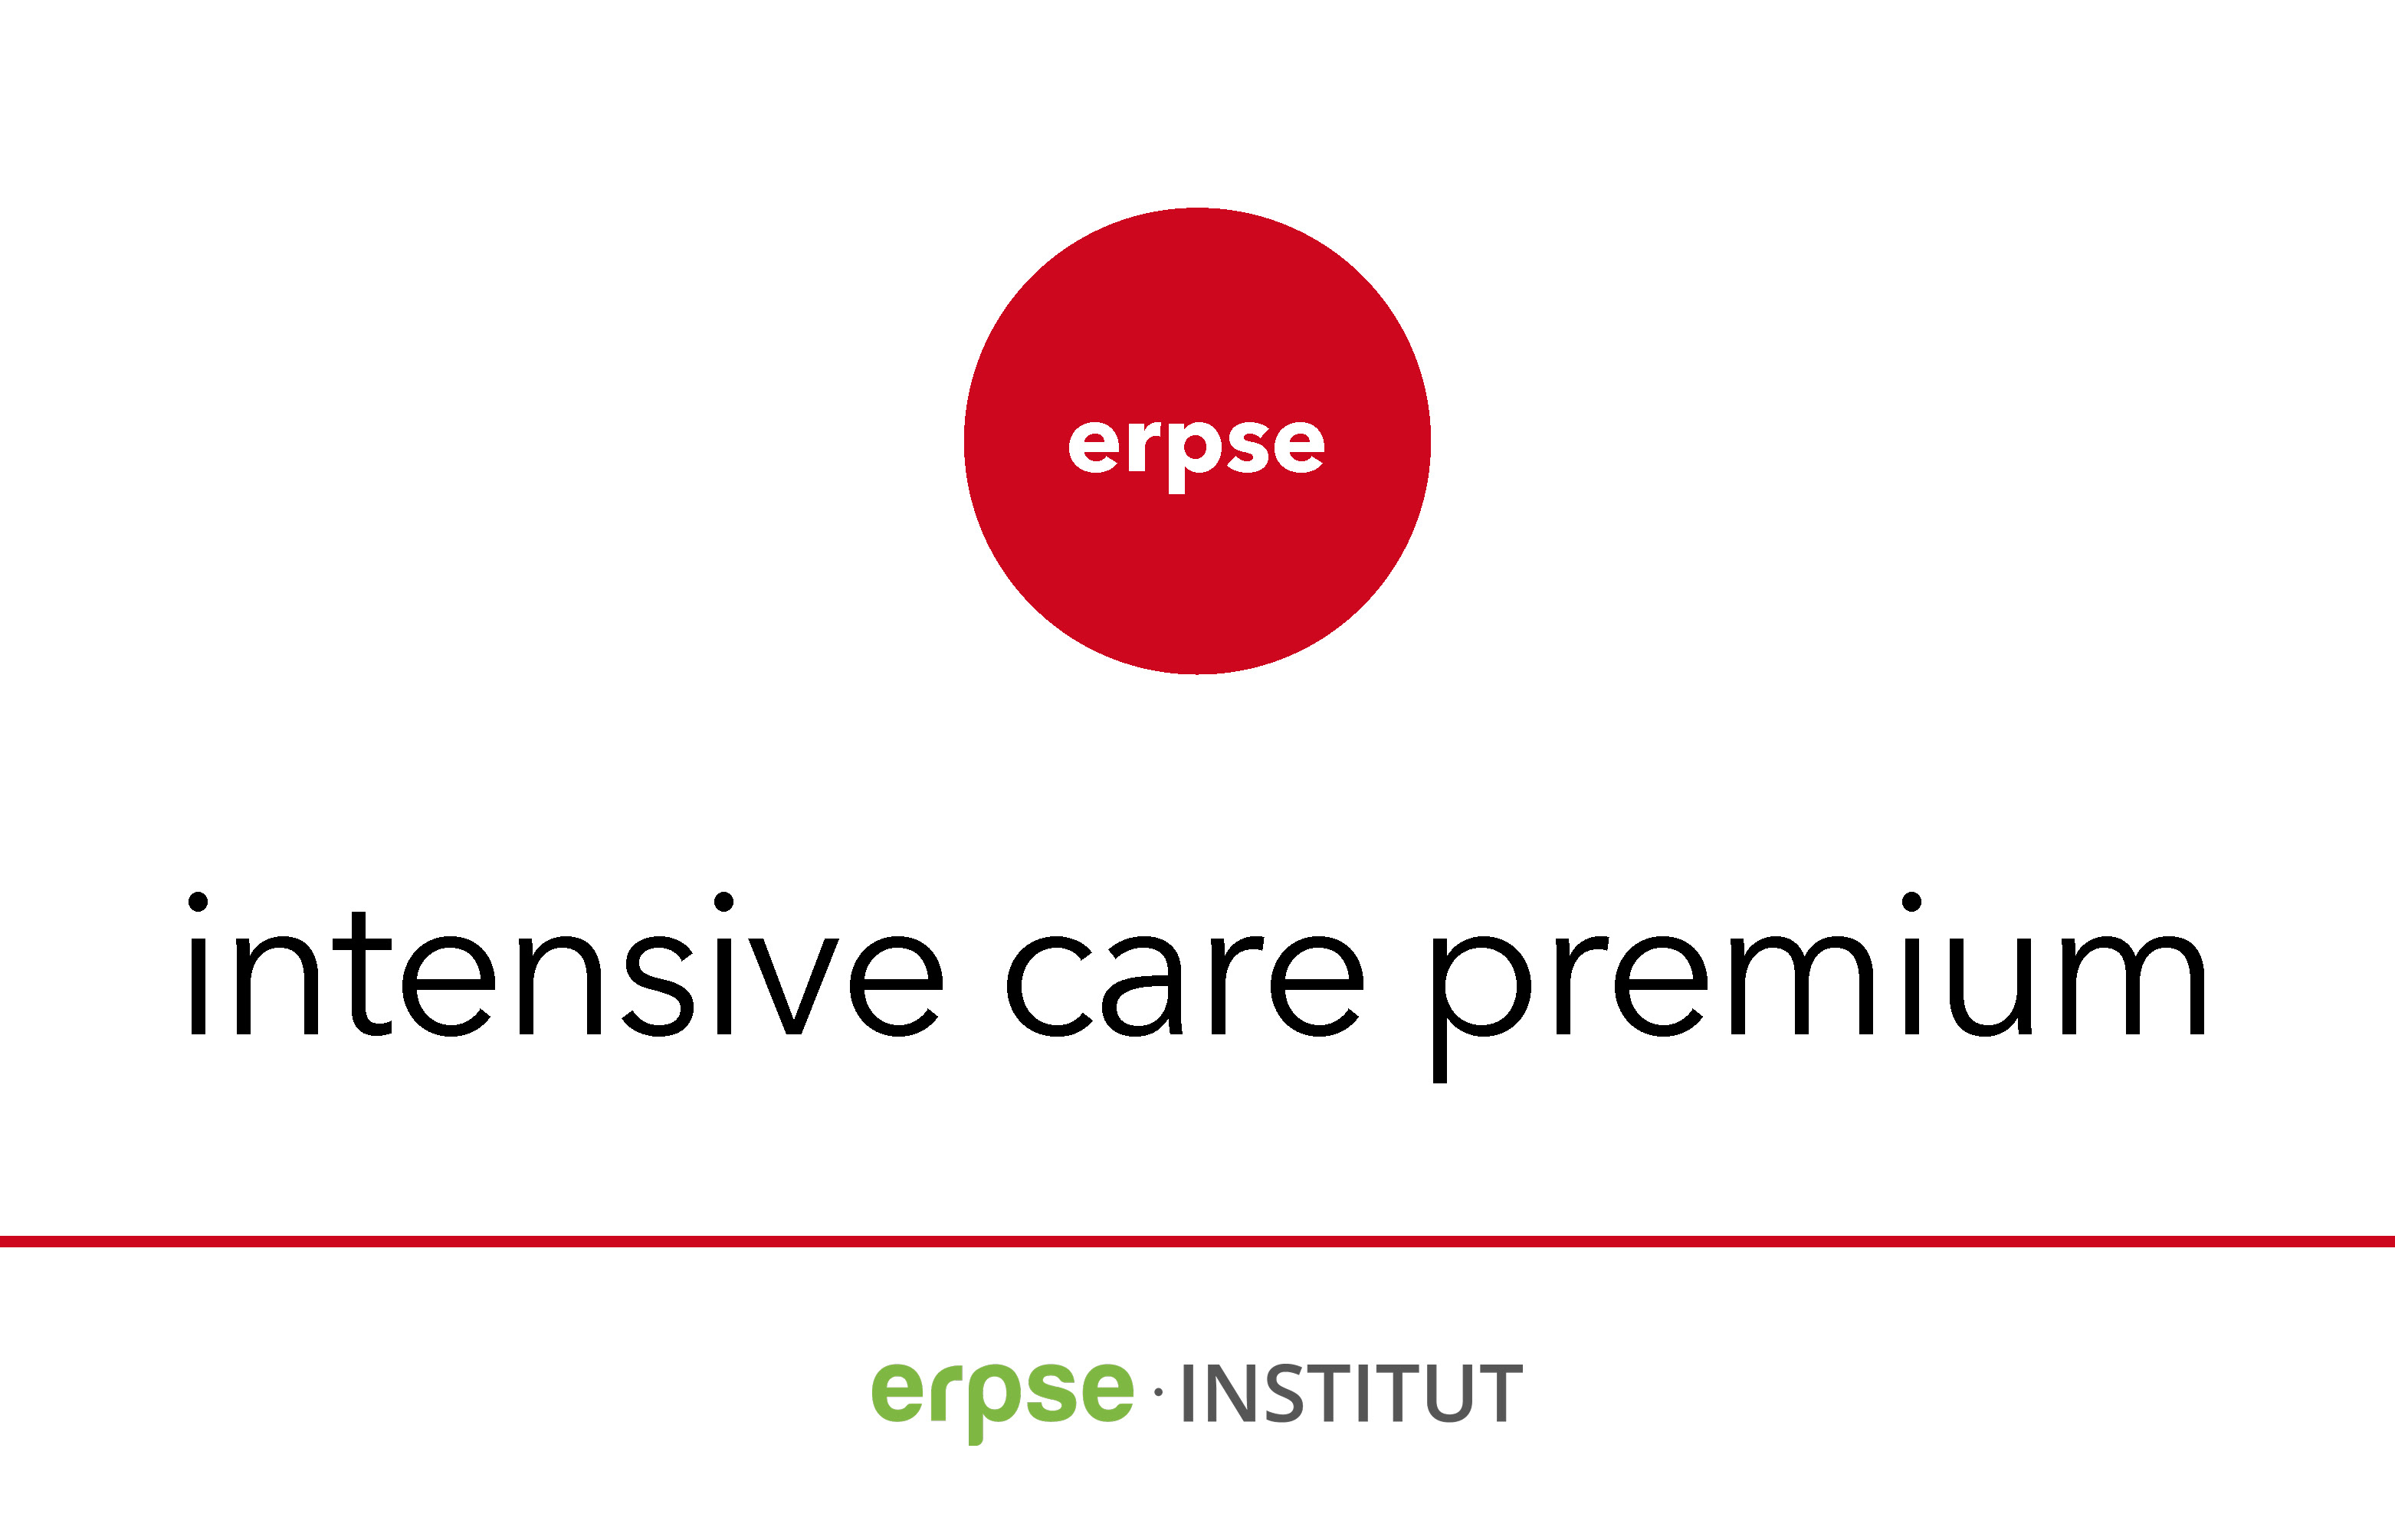 erpse intensive care - premium